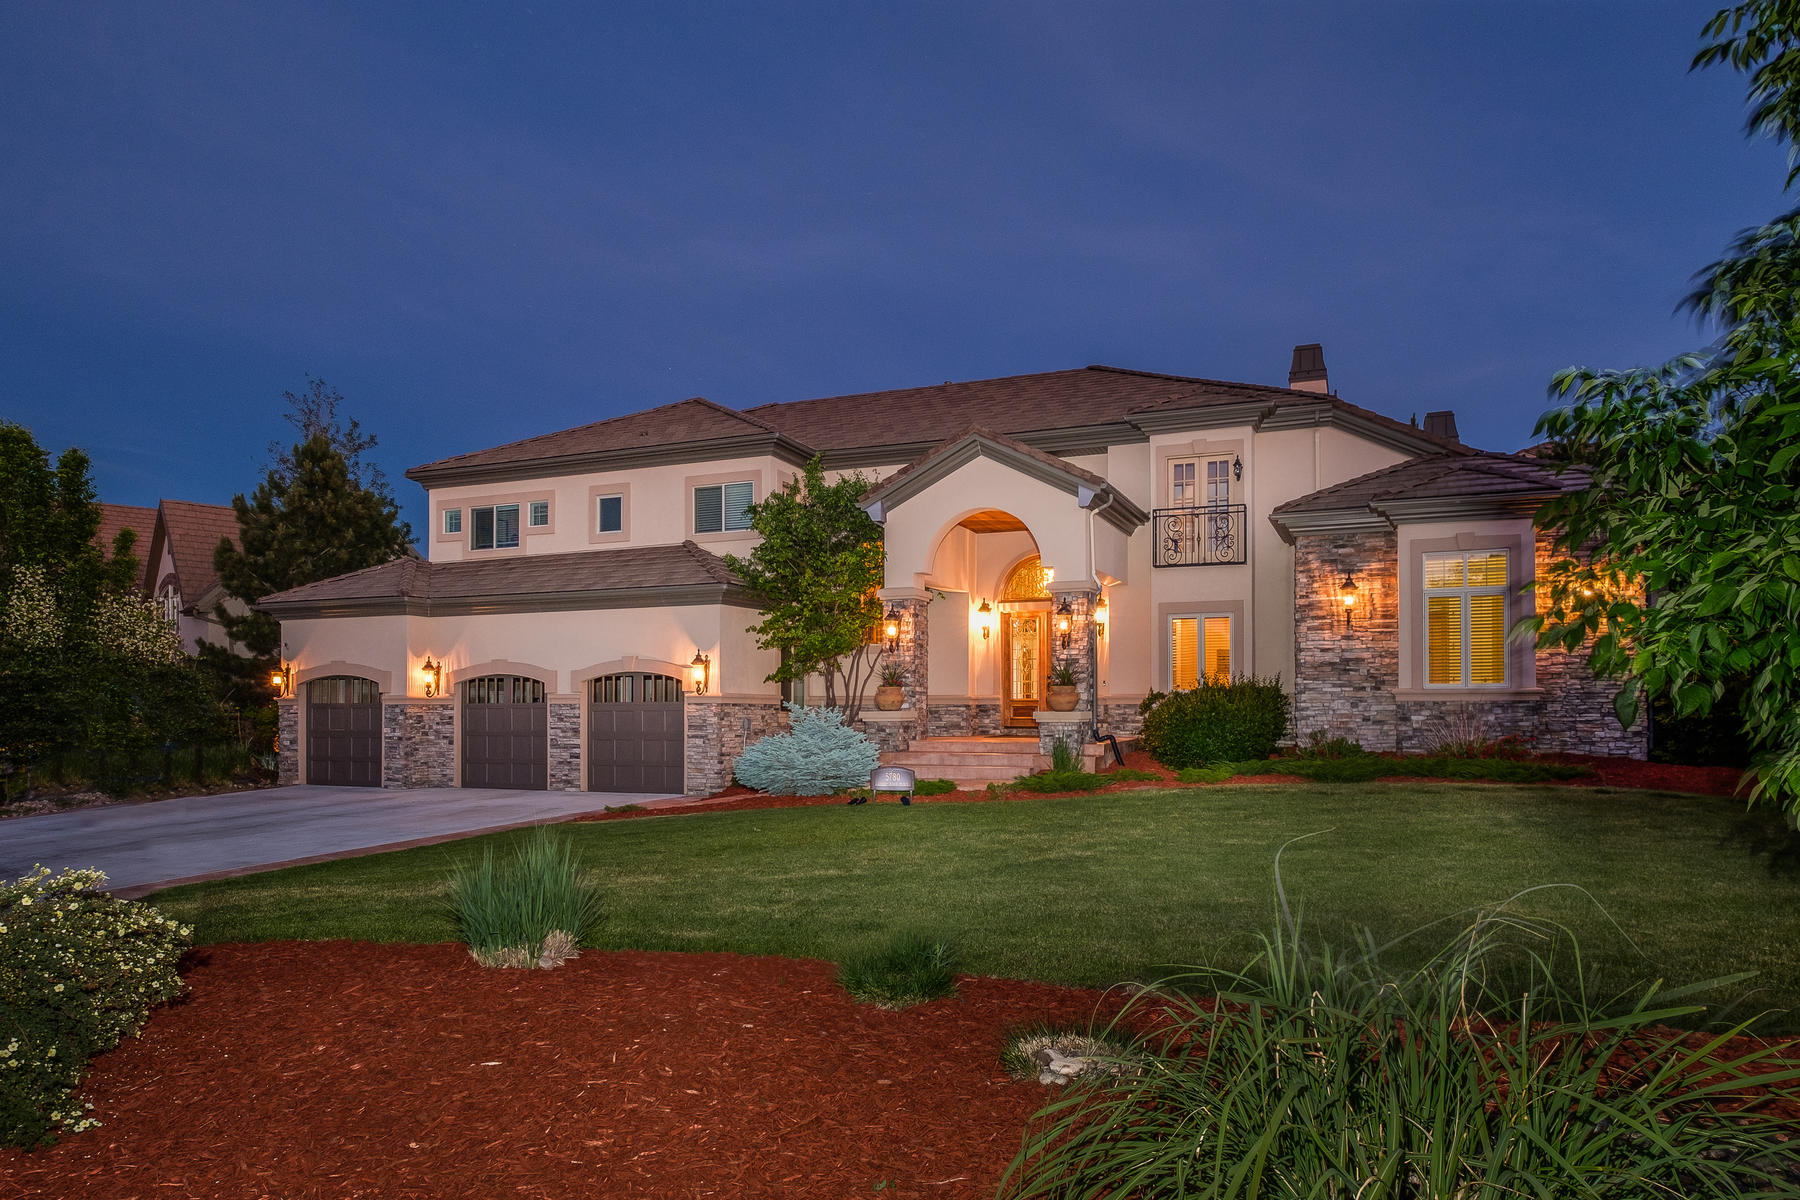 Single Family Home for Active at Spectacular custom home in highly sought after Amber Ridge sure to impress 5780 Amber Ridge Pl Castle Pines, Colorado 80108 United States